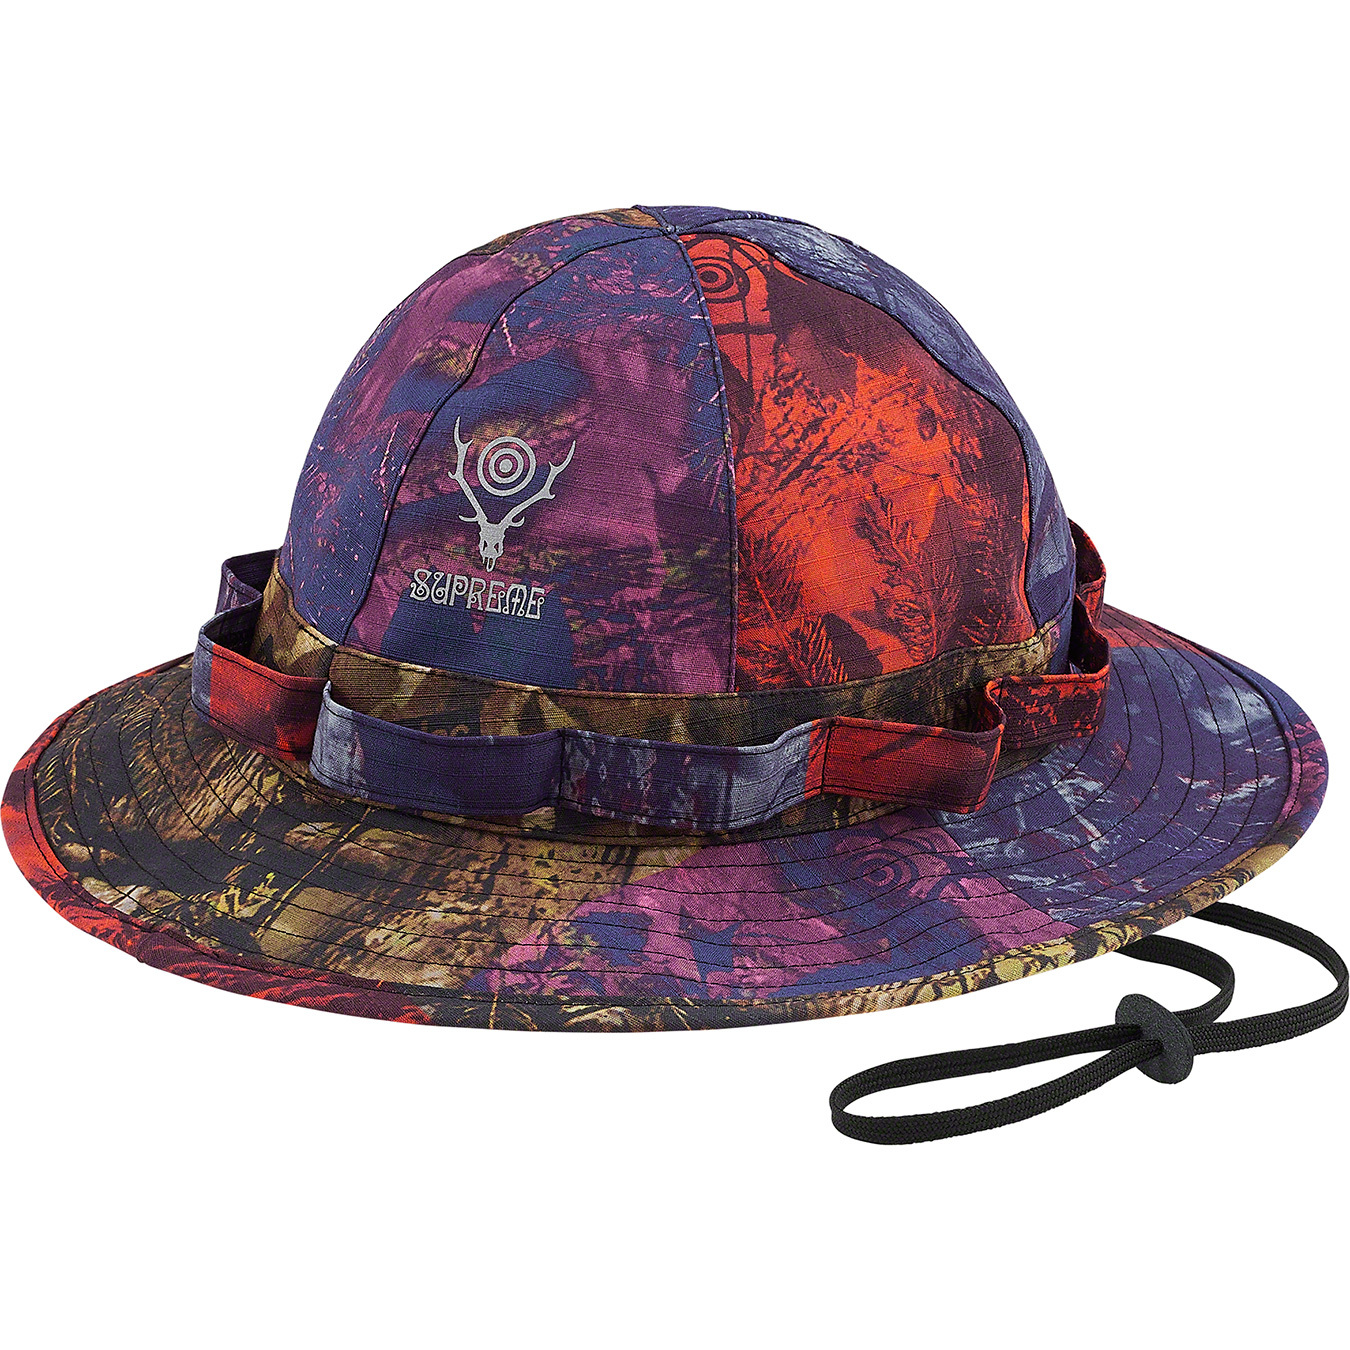 supreme-south2-west8-21ss-collaboration-release-2020424-week9-jungle-hat